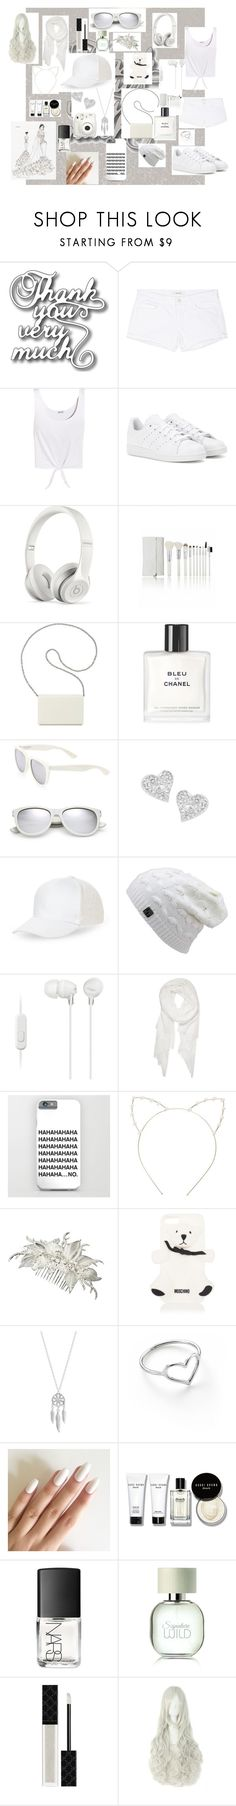 """All white"" by passarinha ❤ liked on Polyvore featuring J Brand, Splendid, adidas, Beats by Dr. Dre, Nine West, Chanel, Yves Saint Laurent, Vivienne Westwood, BCBGeneration and Sony"